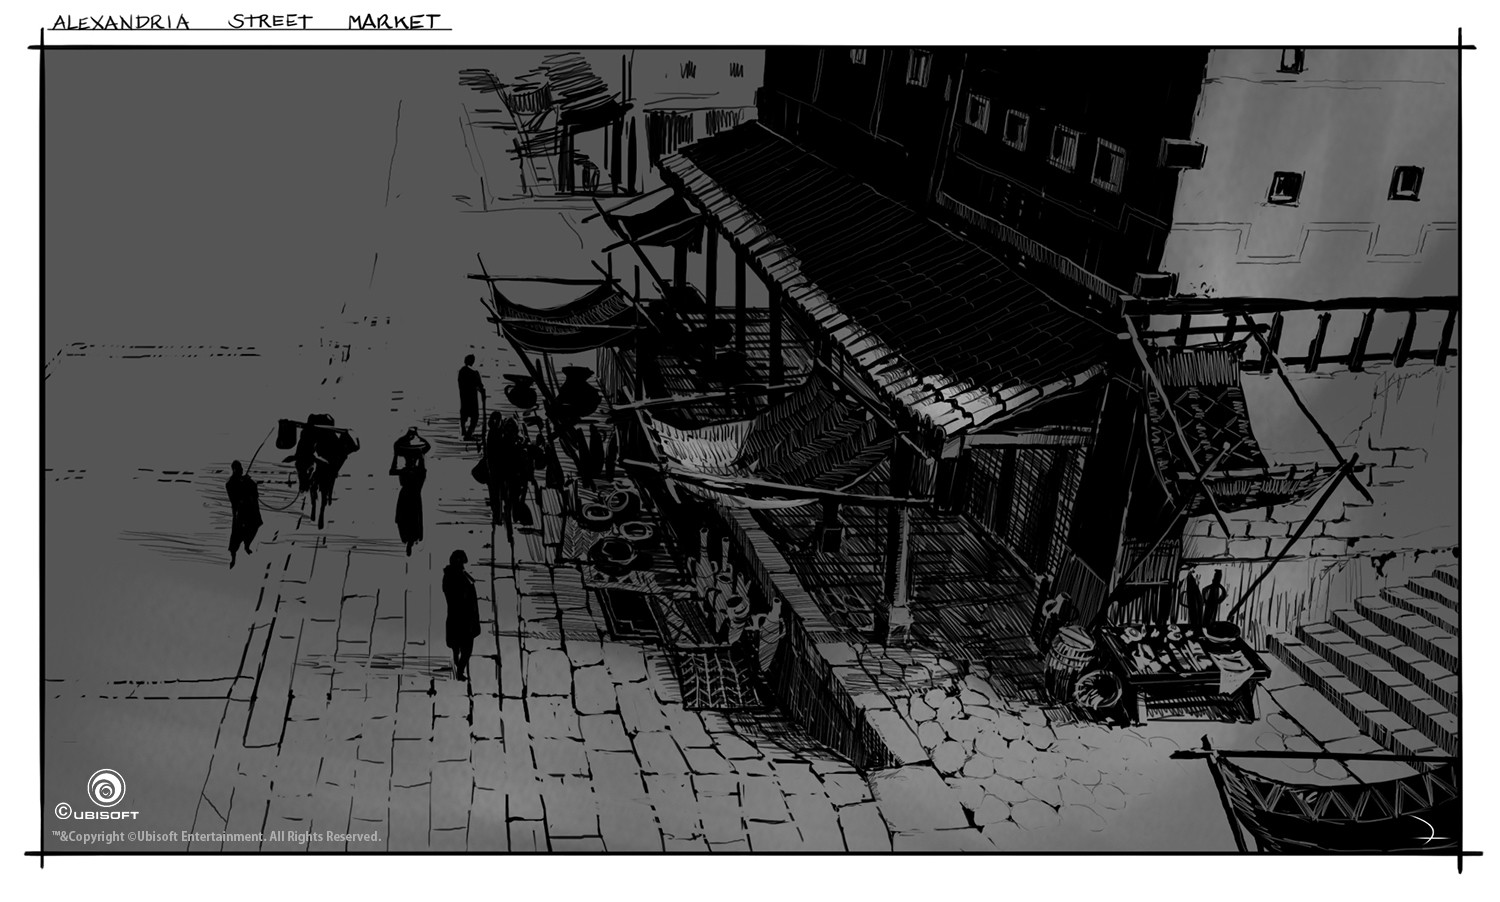 Martin deschambault aco city market sketch mdeschambault